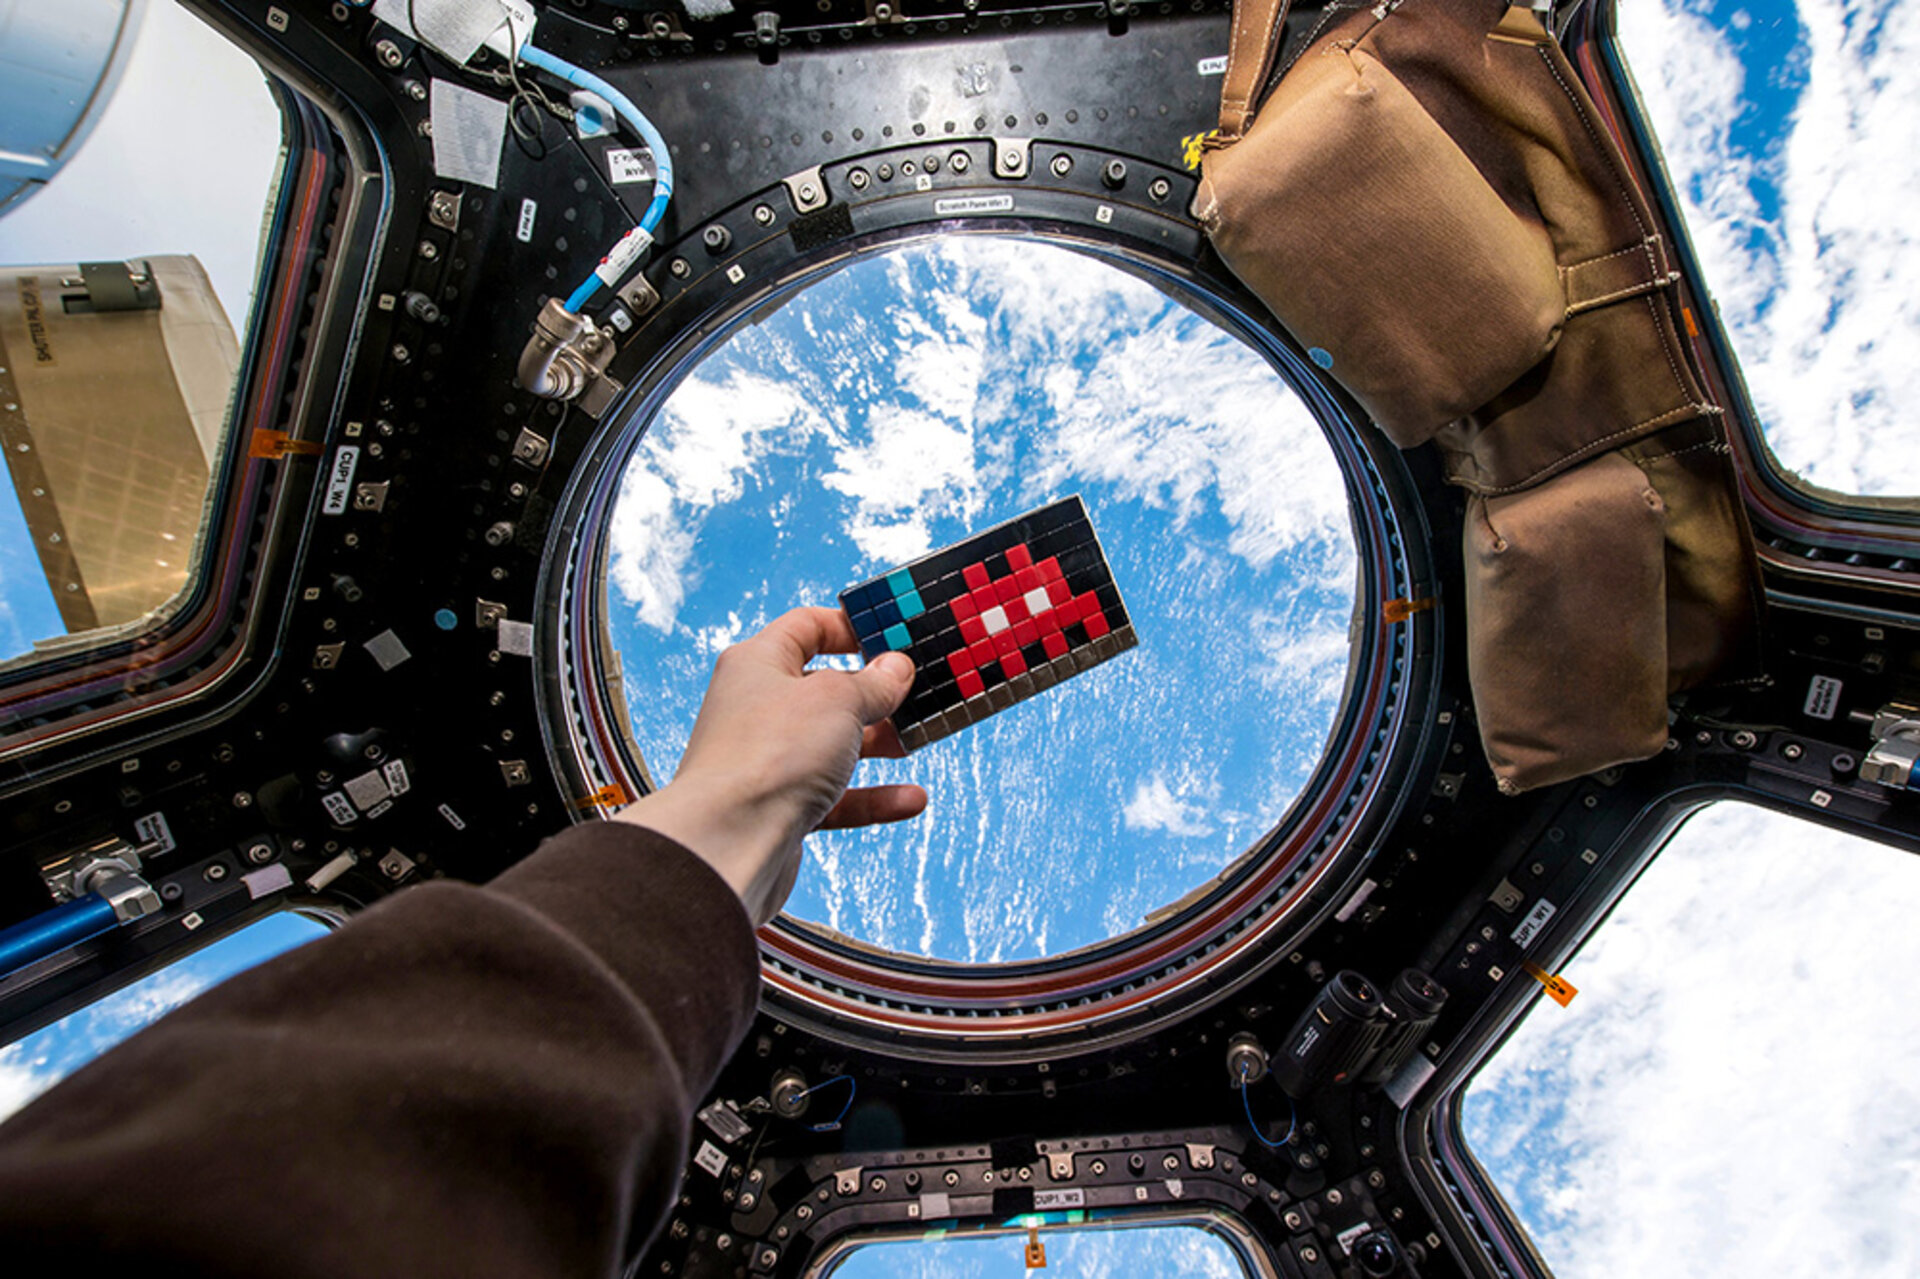 'A Space Invader' on the International Space Station